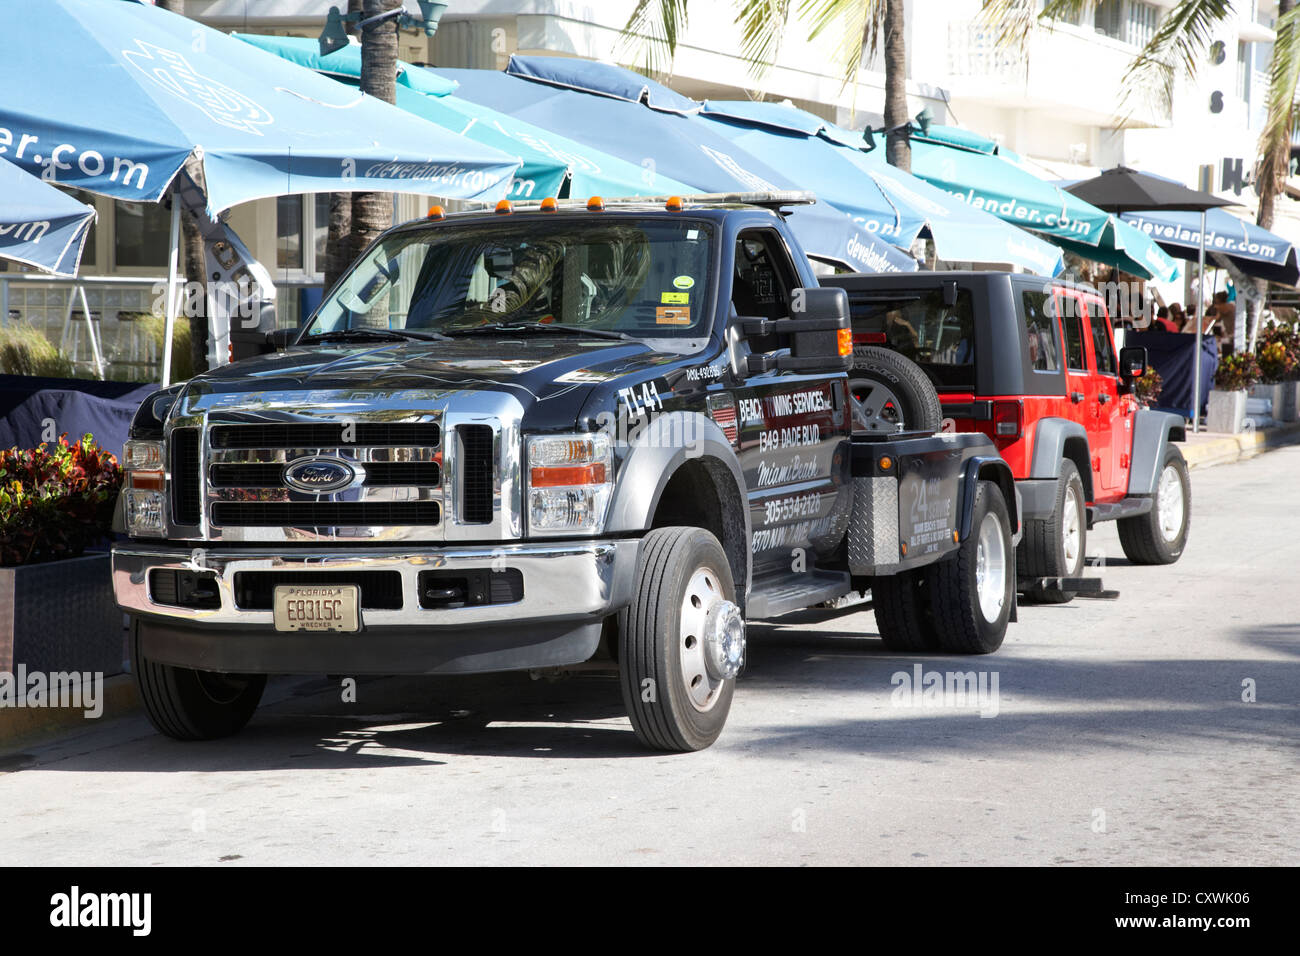 car being towed away for parking violation miami south beach florida usa - Stock Image